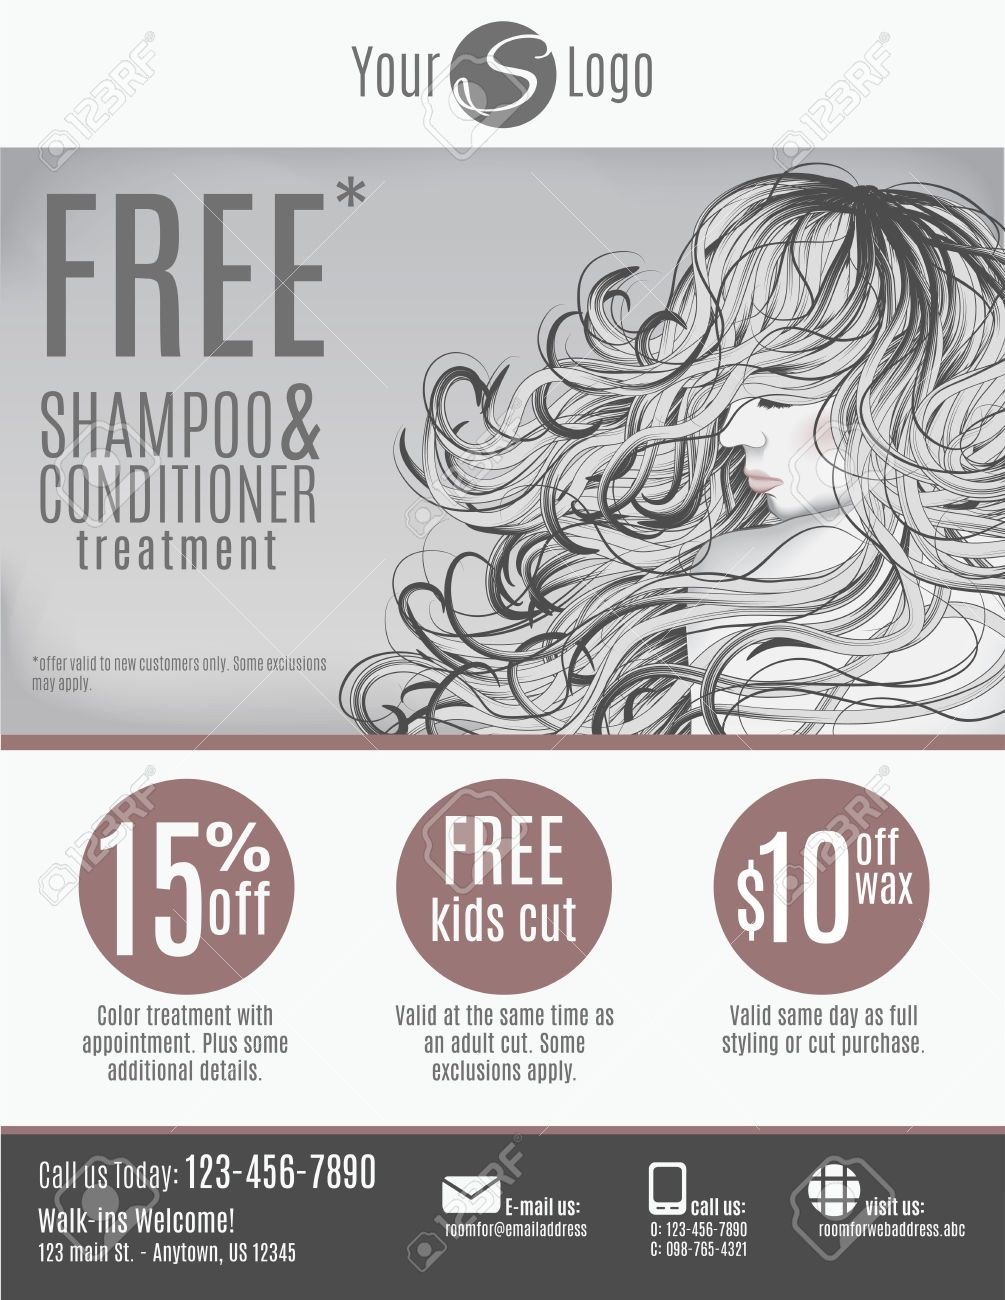 hair salon advertising flyers - Google Search  Salon advertising